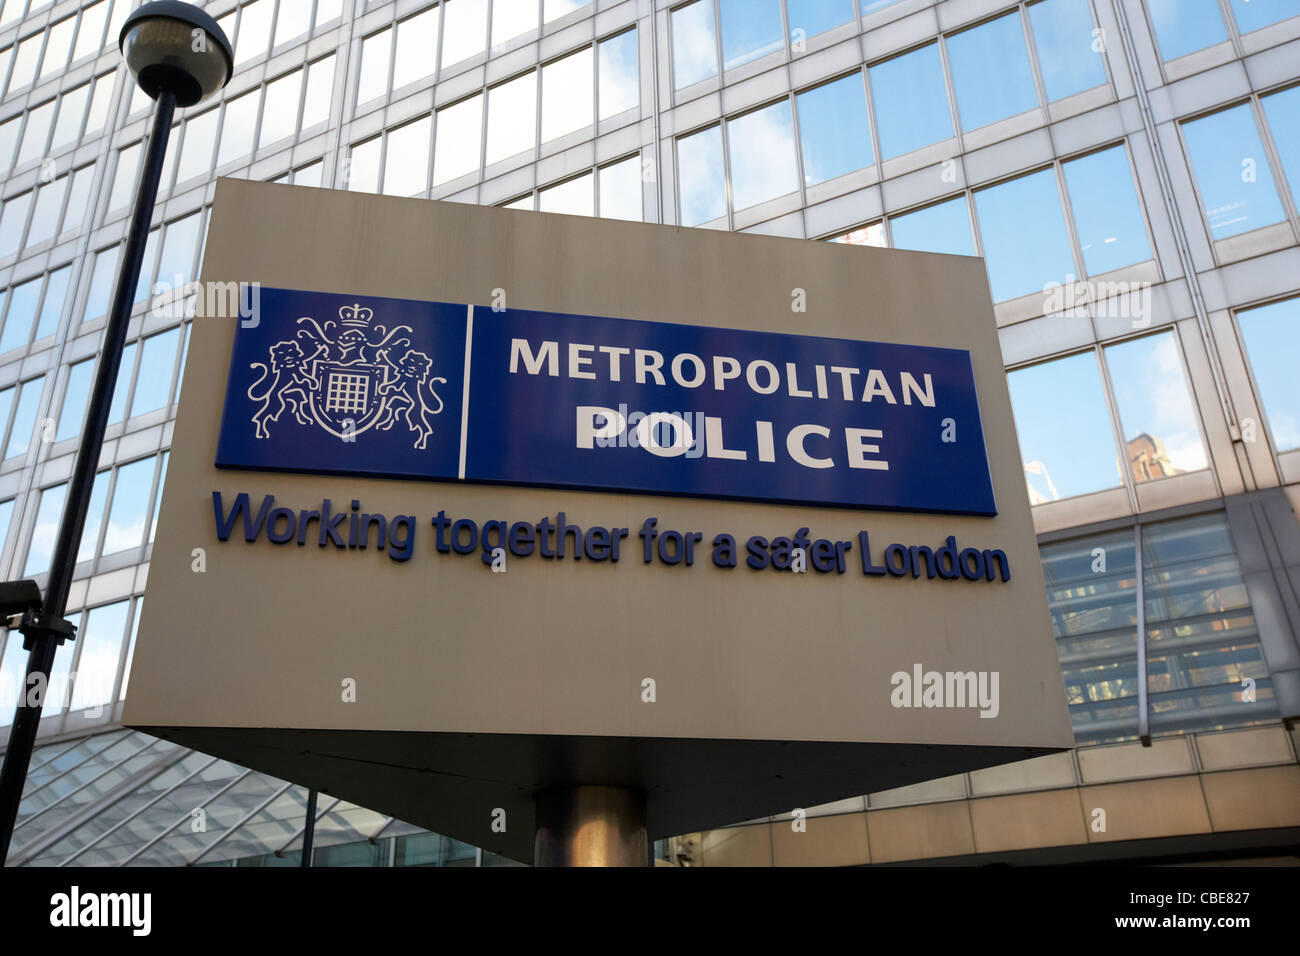 rotating sign outside the old metropolitan police headquarters New Scotland Yard broadway London England Uk United - Stock Image